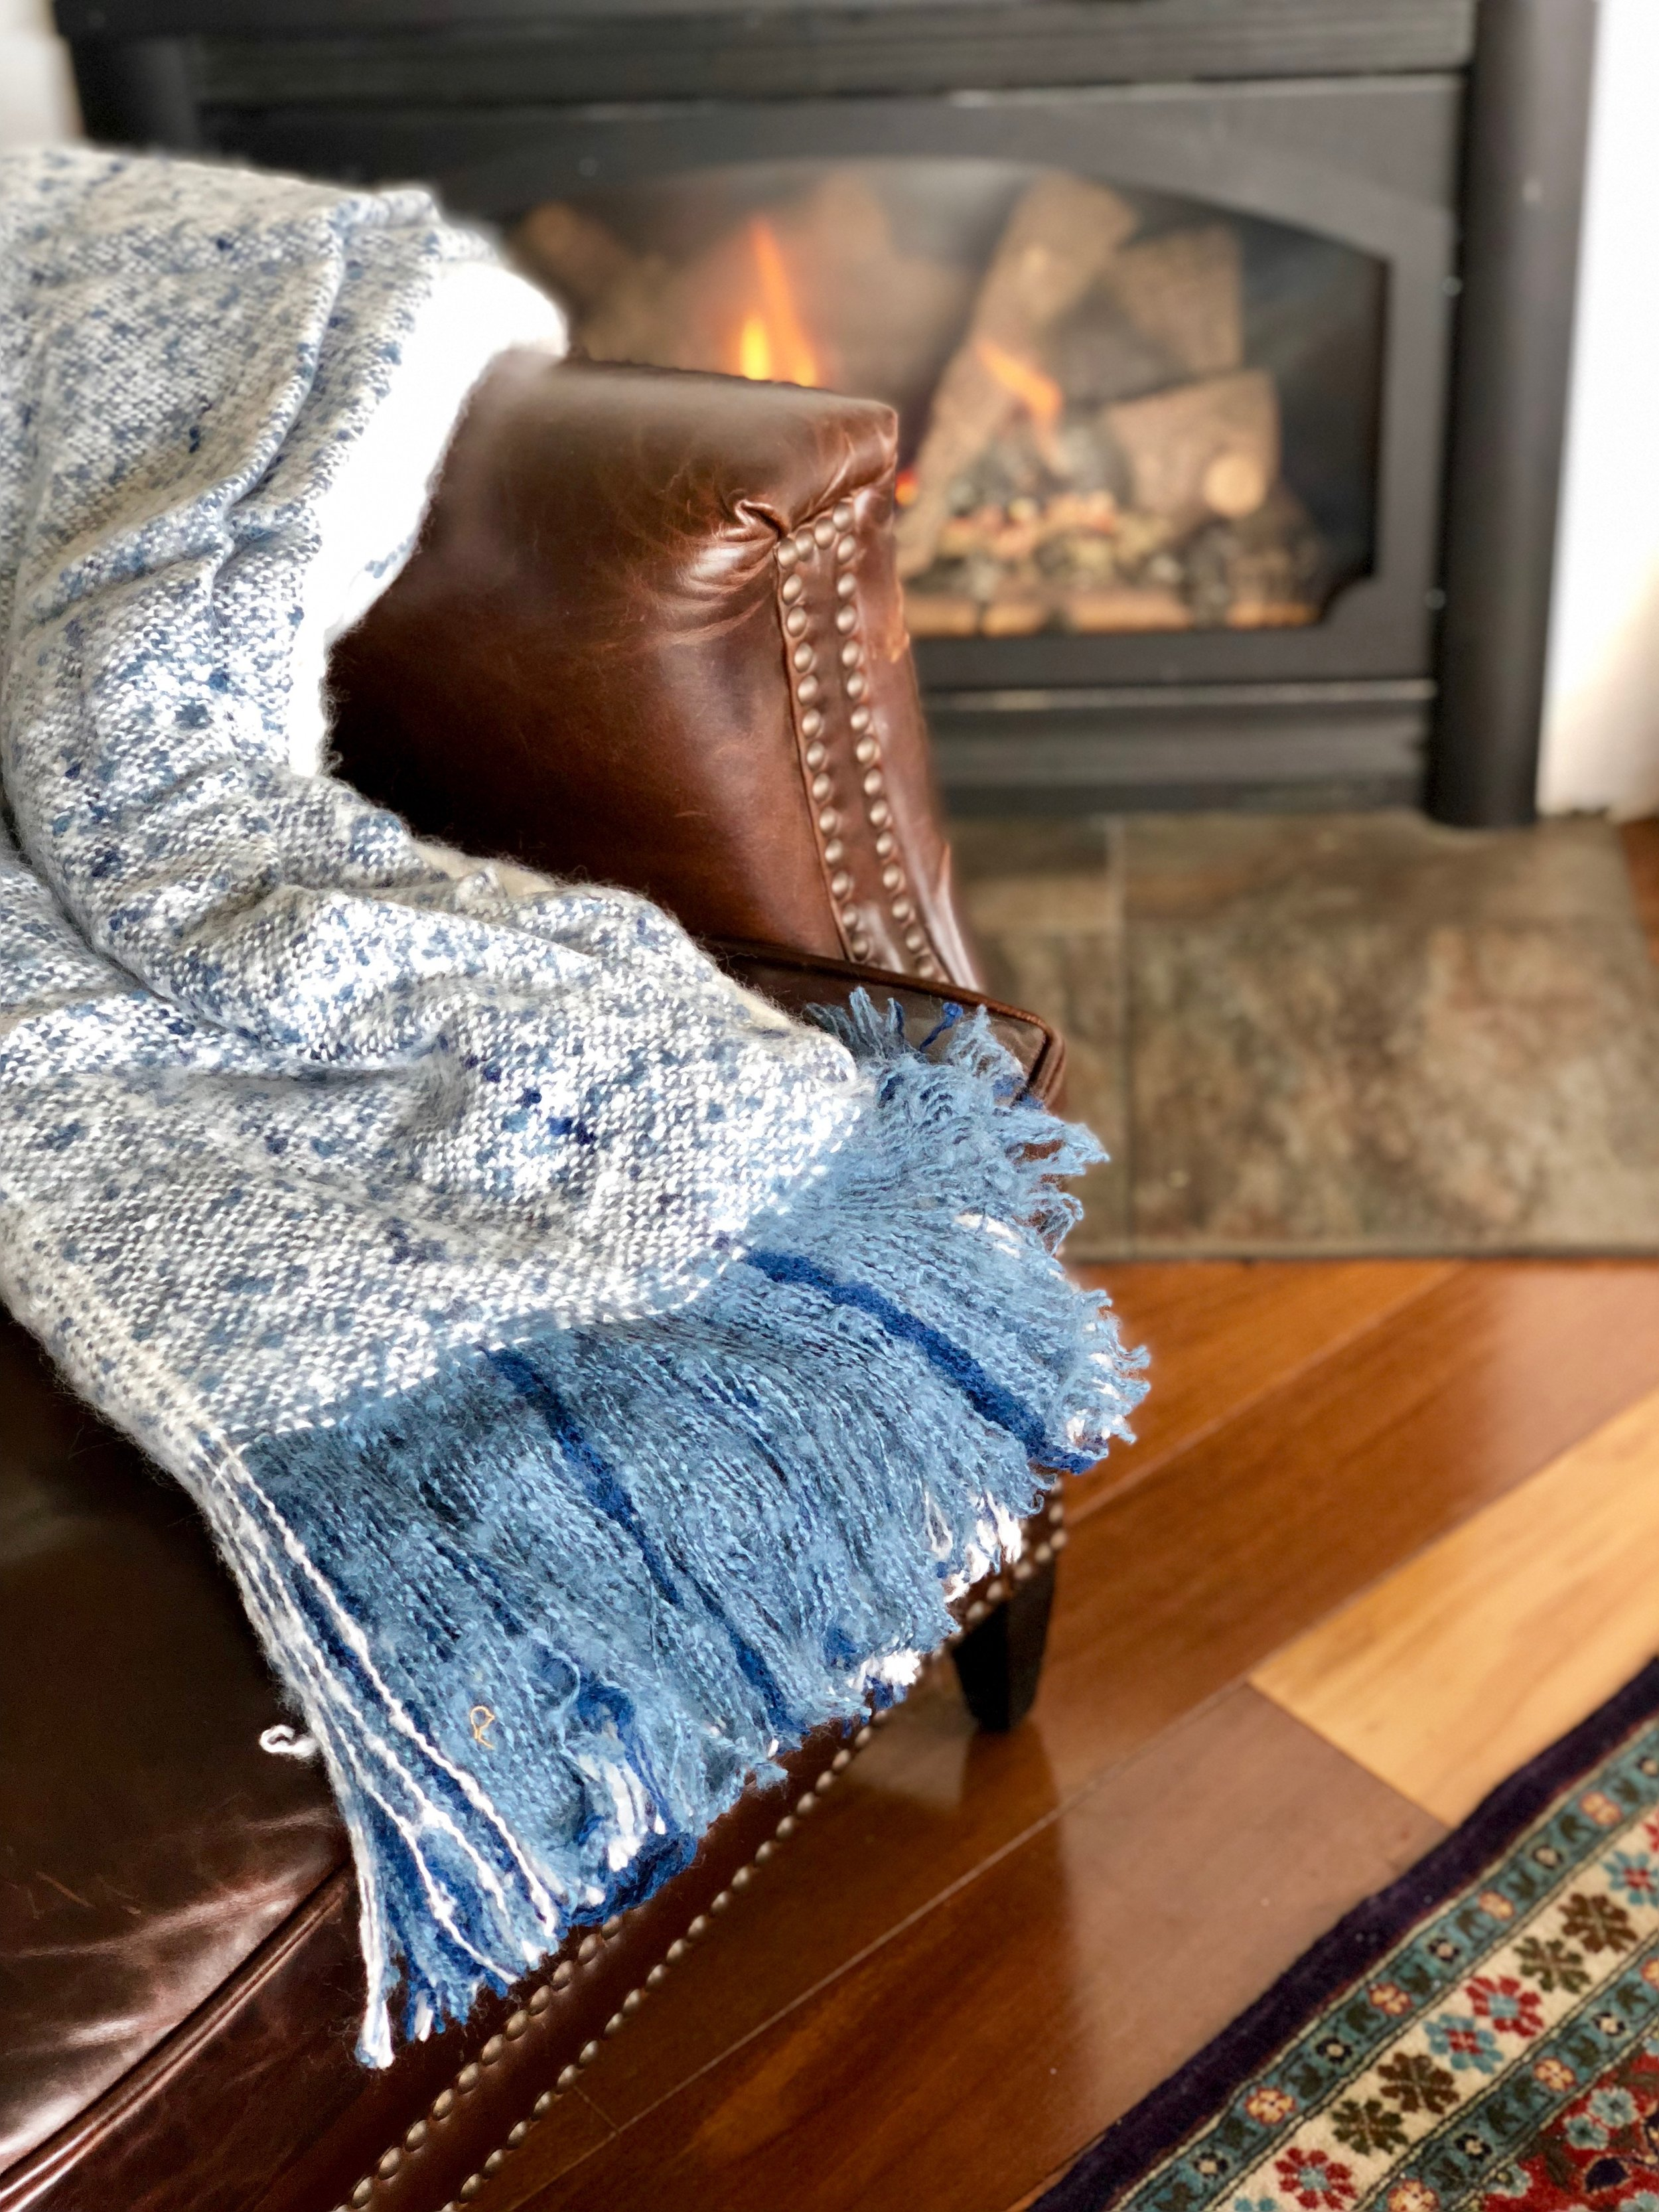 Blue Ombre Blanket - If a blanket falls in a forest, does it still scream your name? With this irresistible knit, the answer is 'yes'! Not just for snuggling anymore, throw this on the end of a bed, chair or sofa for an added layer of texture, color and warmth in any room.